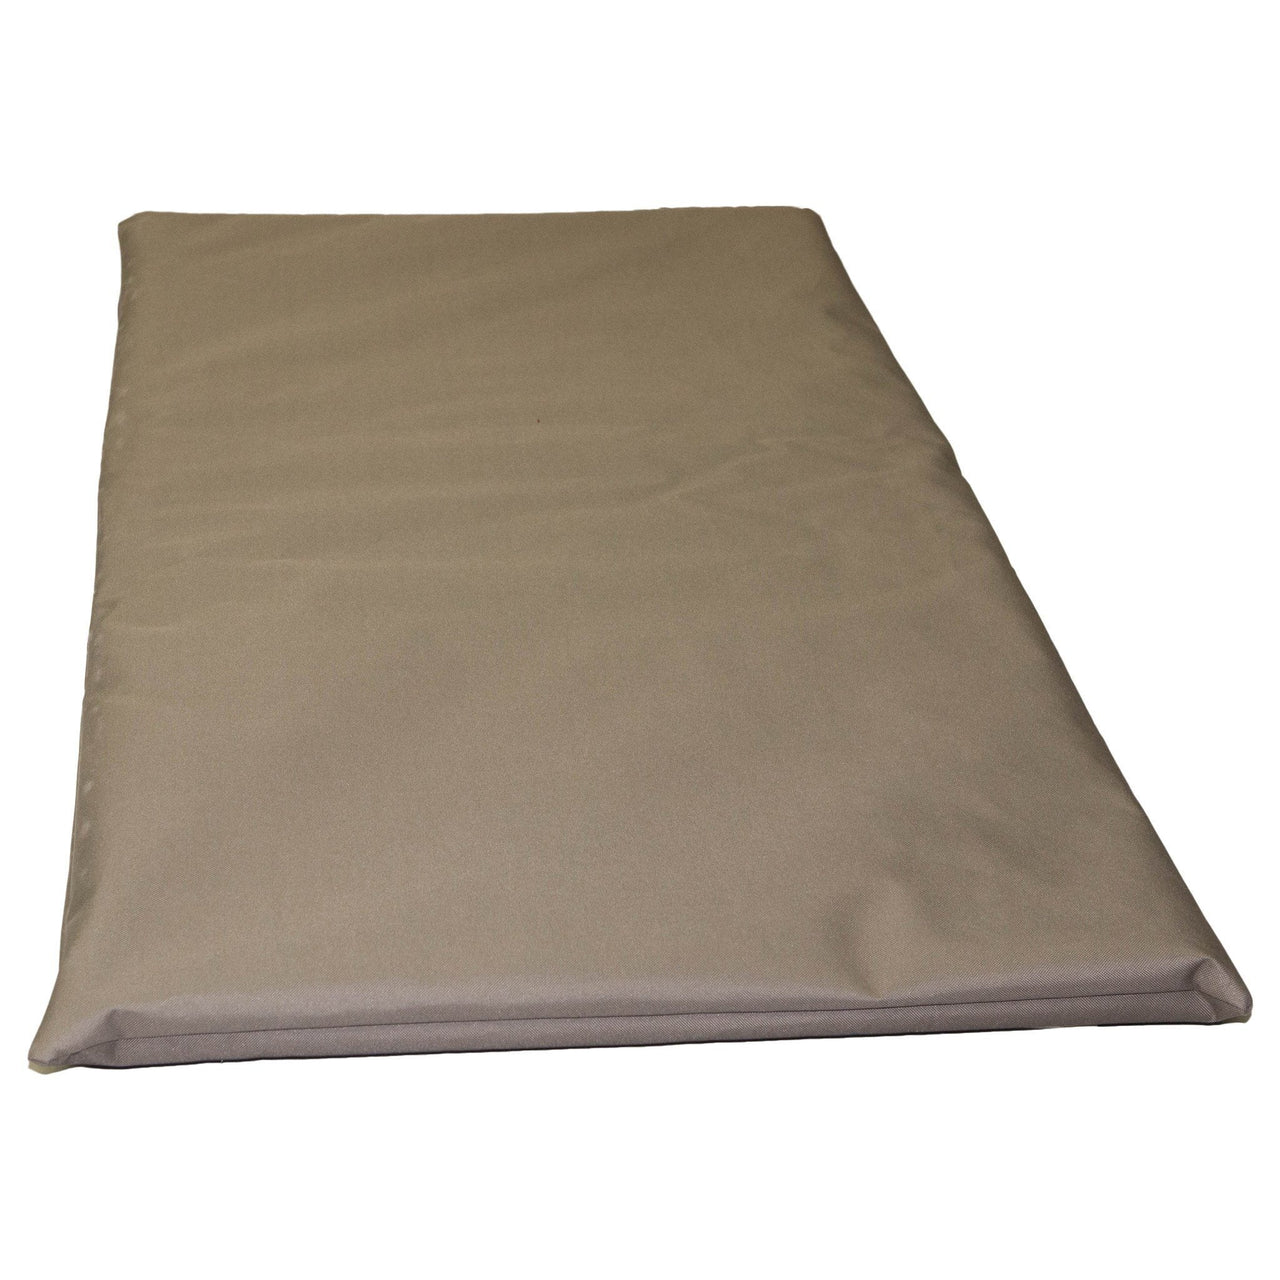 Chew Resistant Crate Pad With 200 Day Guarantee Bullybeds.com Large $104.99 Khaki